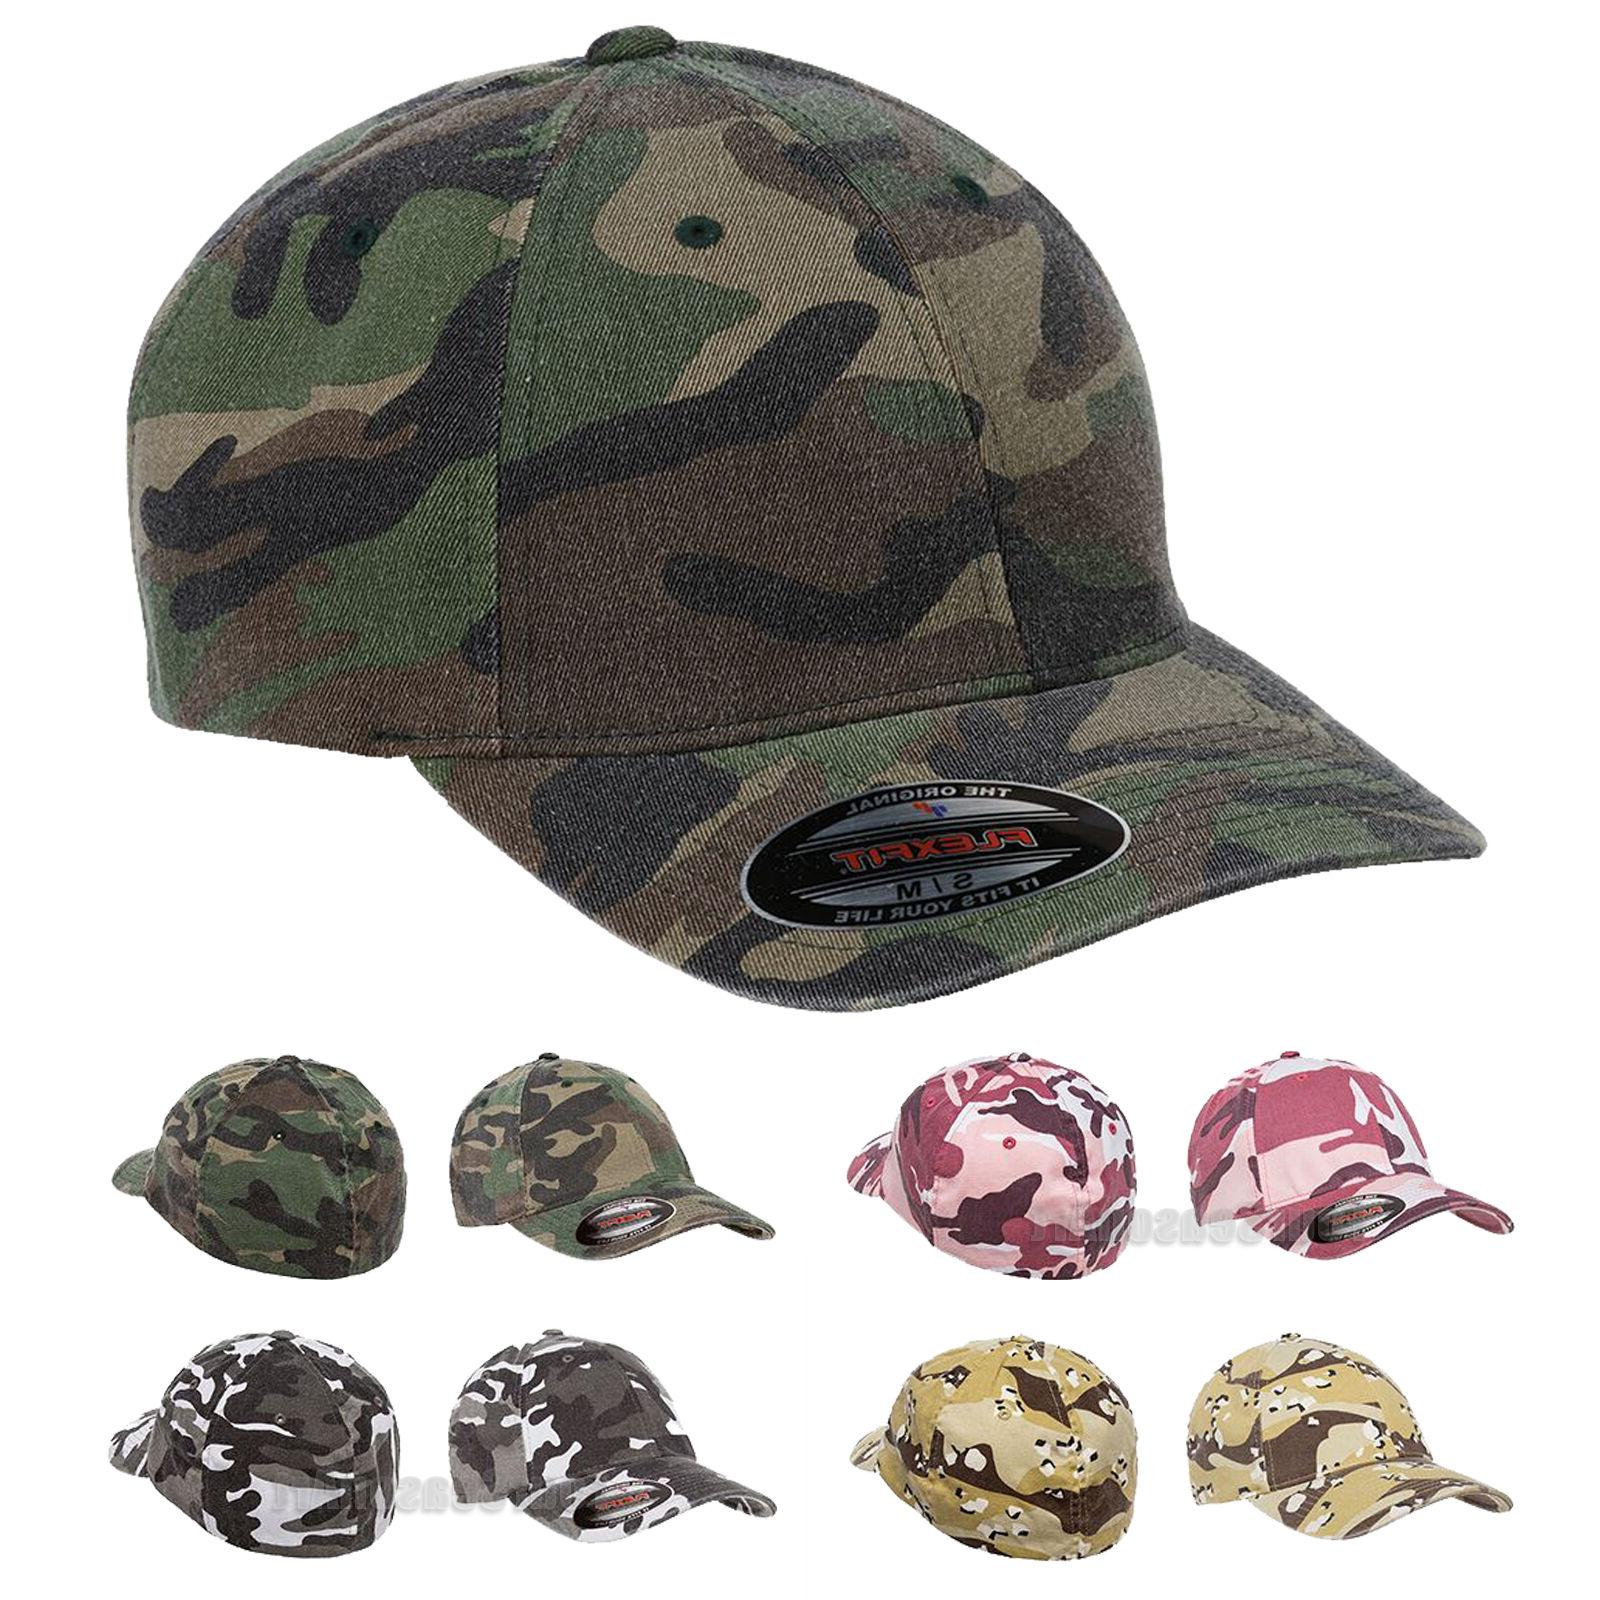 Flexfit Mens Camouflage Cap Structured Camo Fitted Hat S/M L